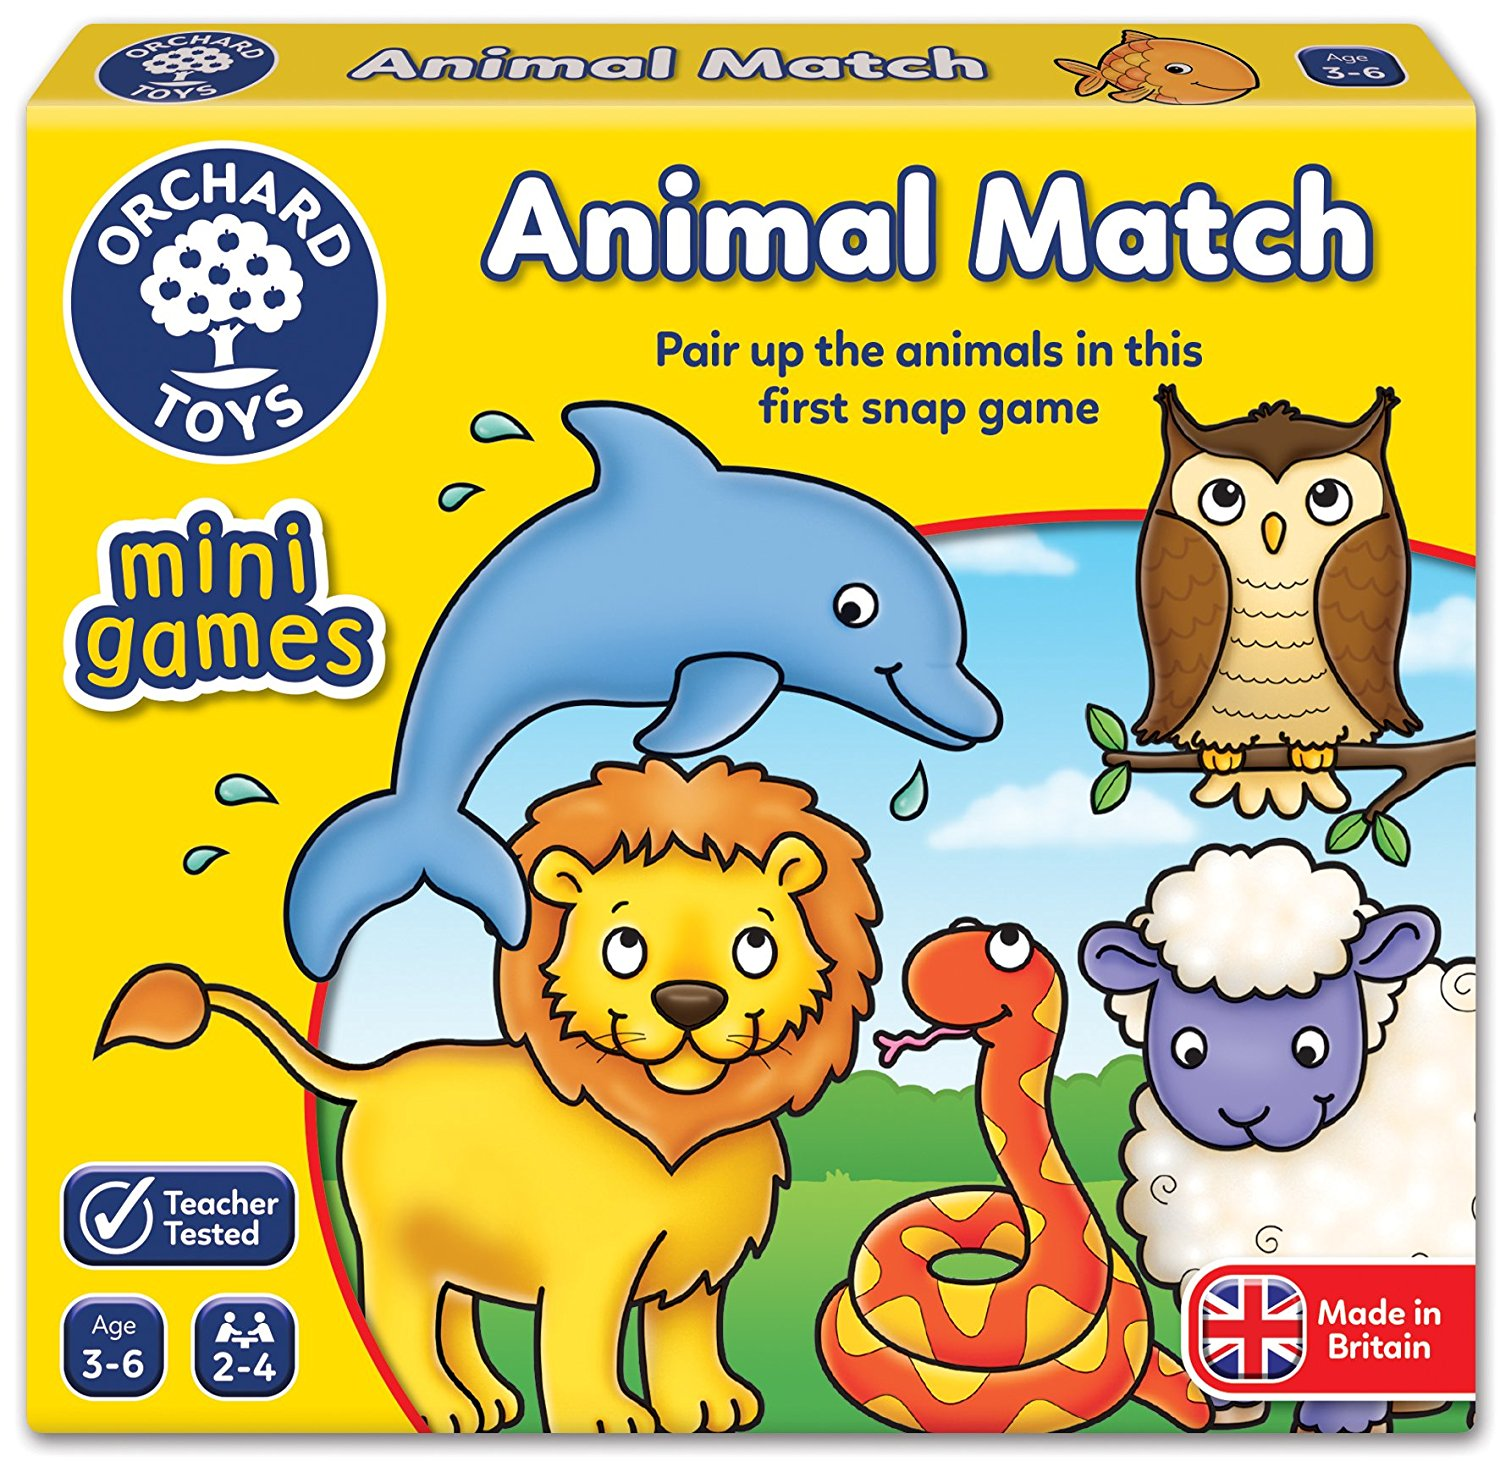 GAME - ANIMAL MATCH